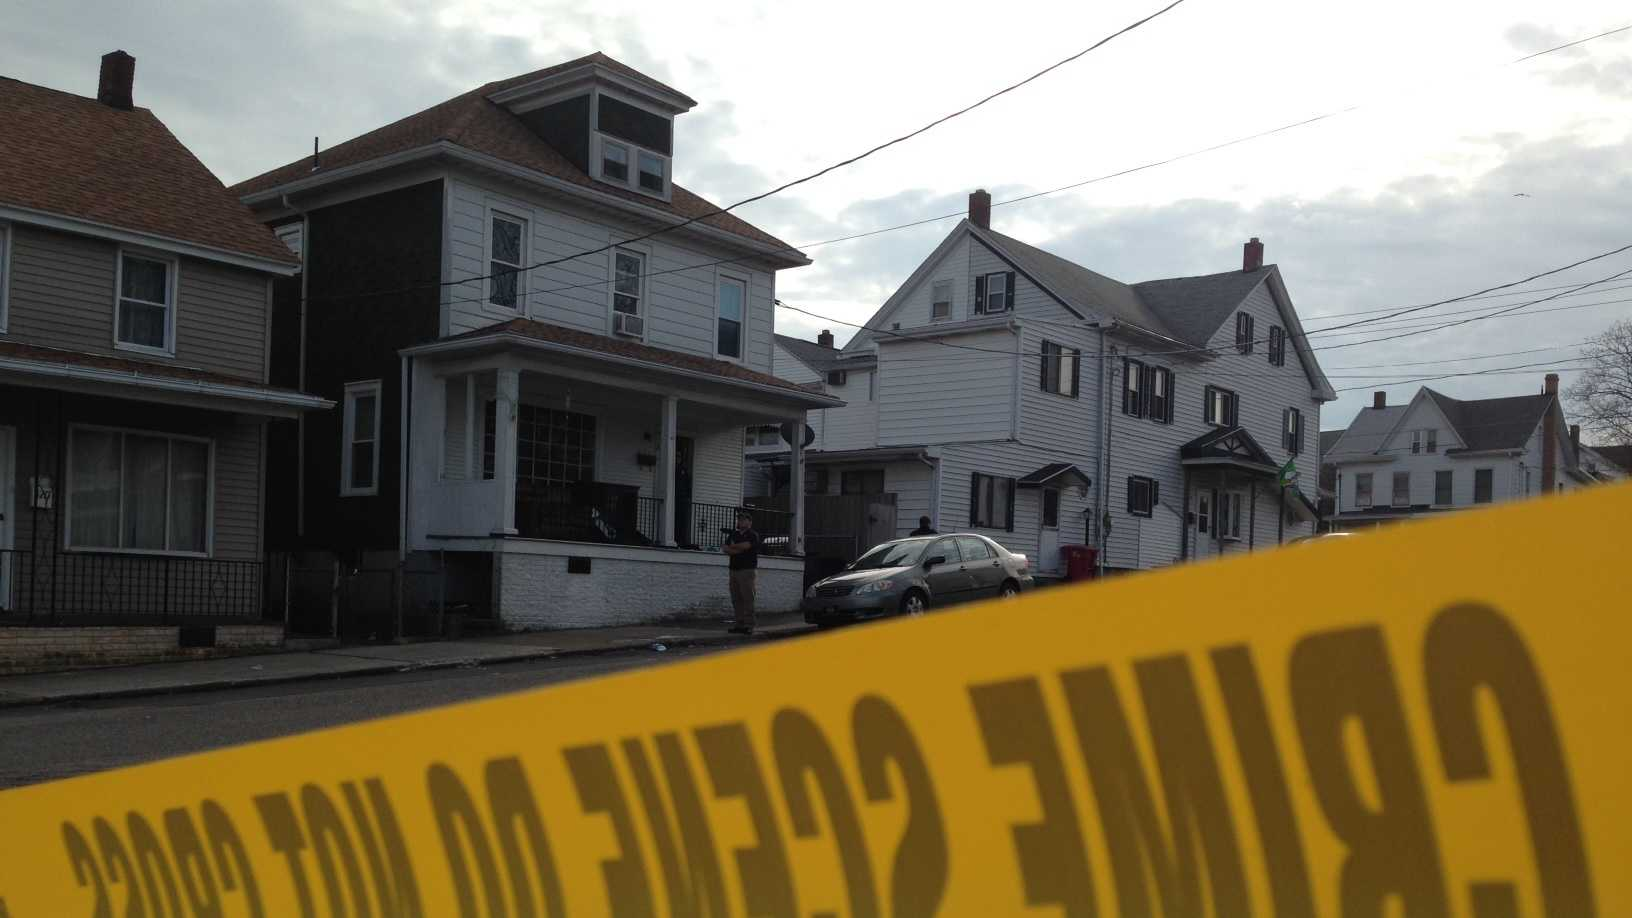 Two in hospital after shooting in Northumberland County